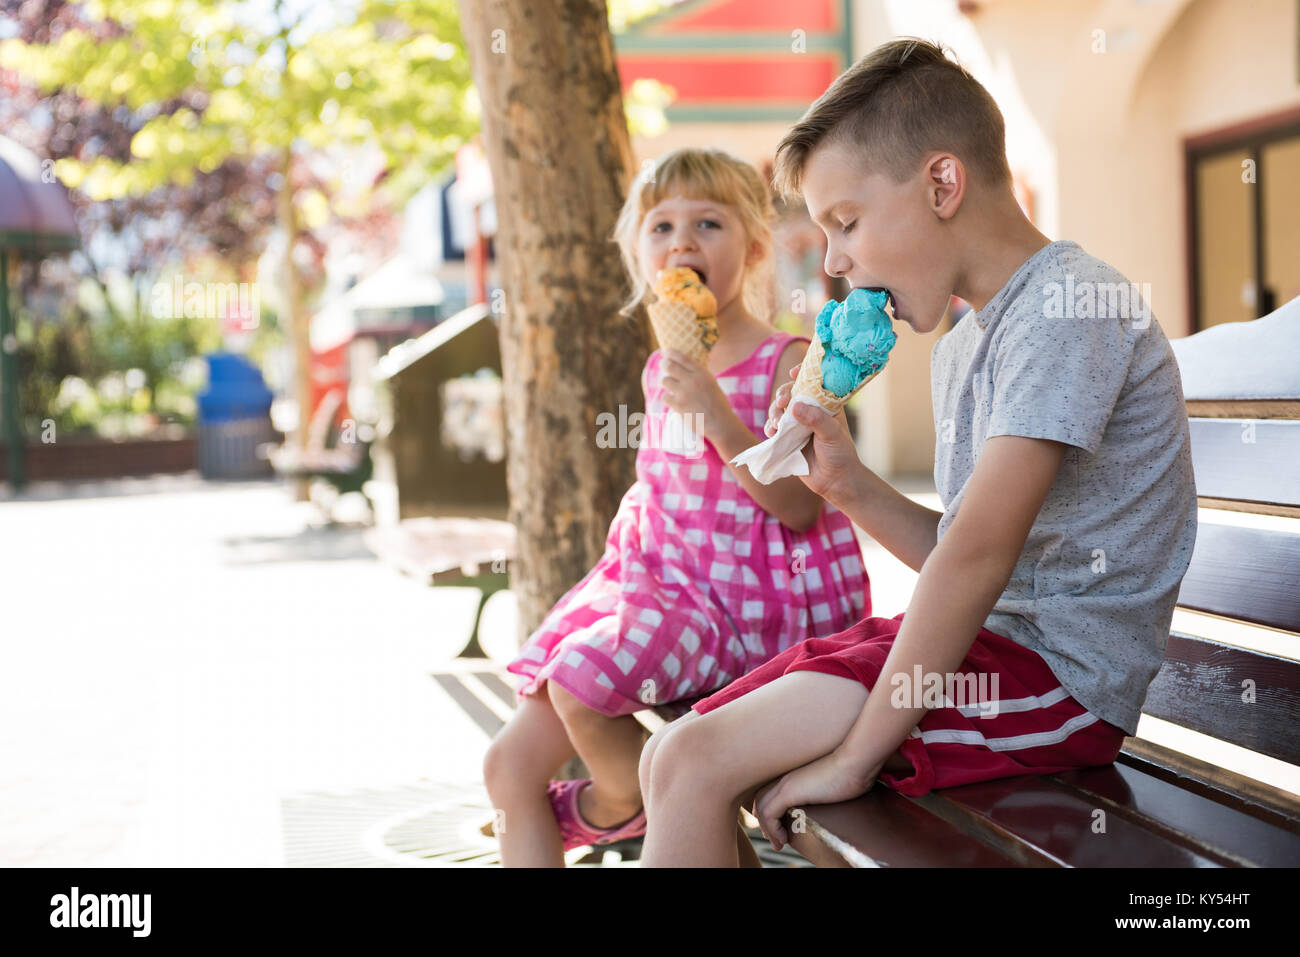 Sibling eating ice cream on bench - Stock Image